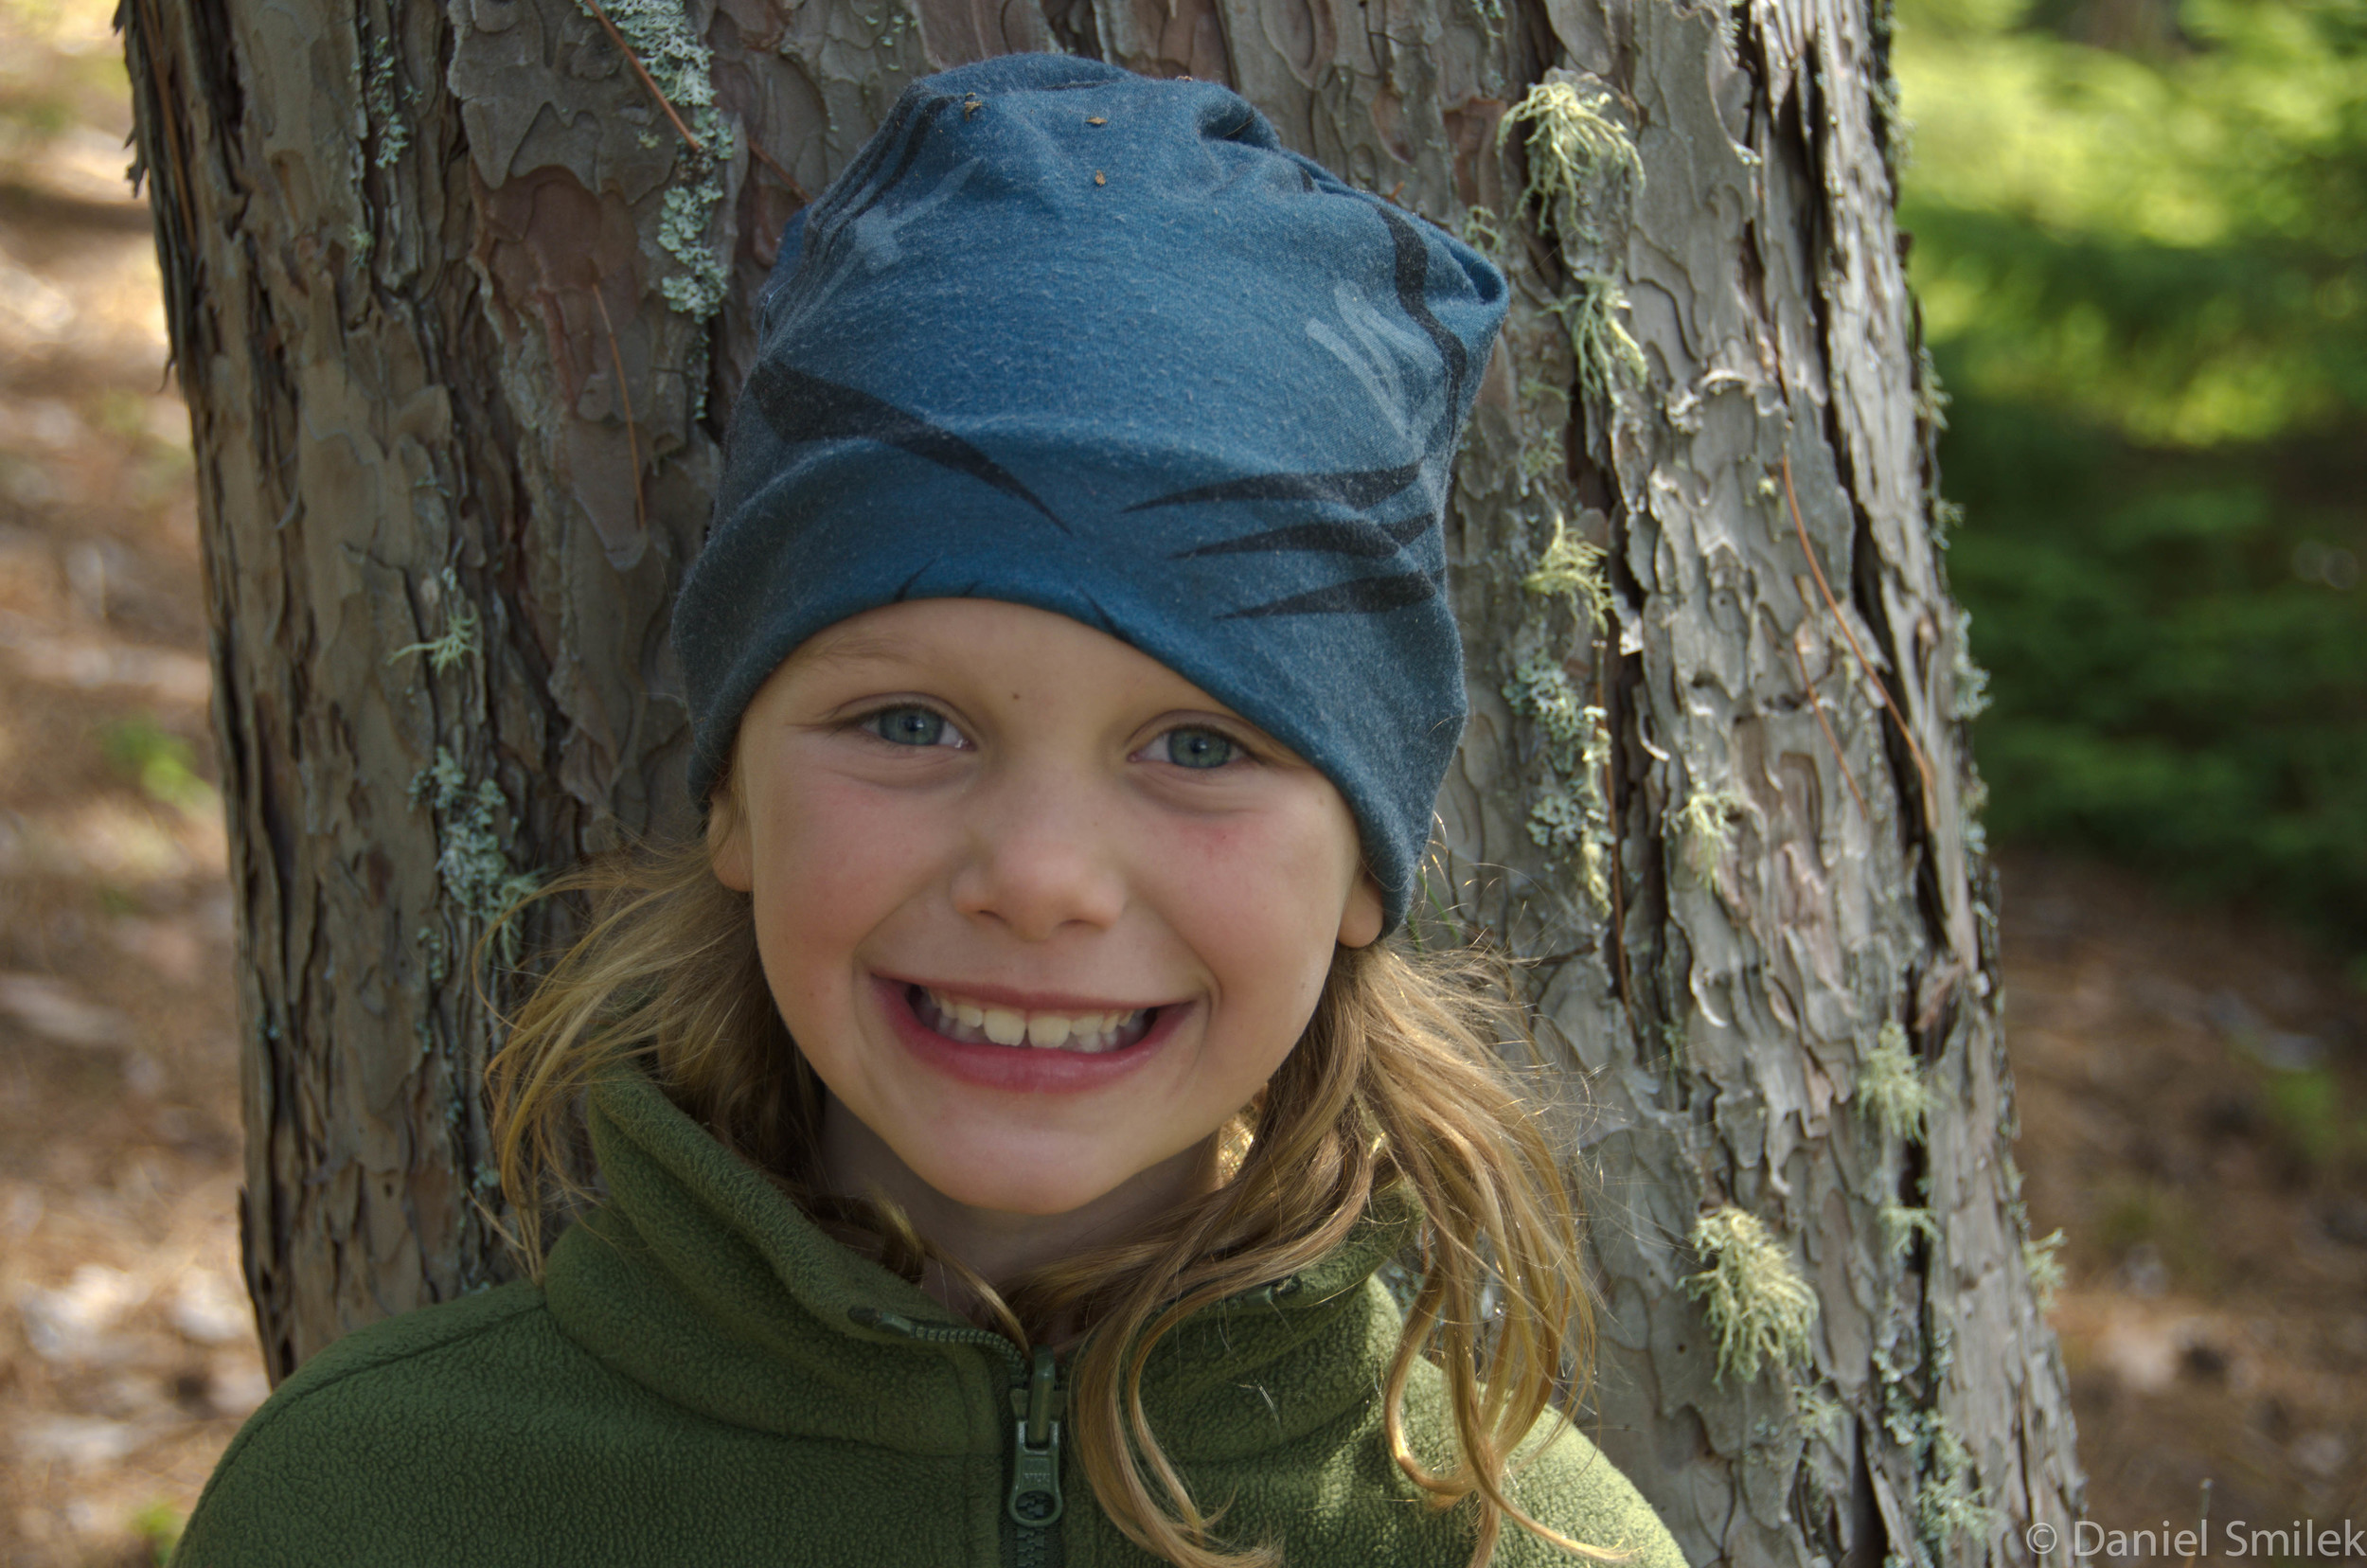 Cousin Eva wearing her Buff while camping in the backcountry.